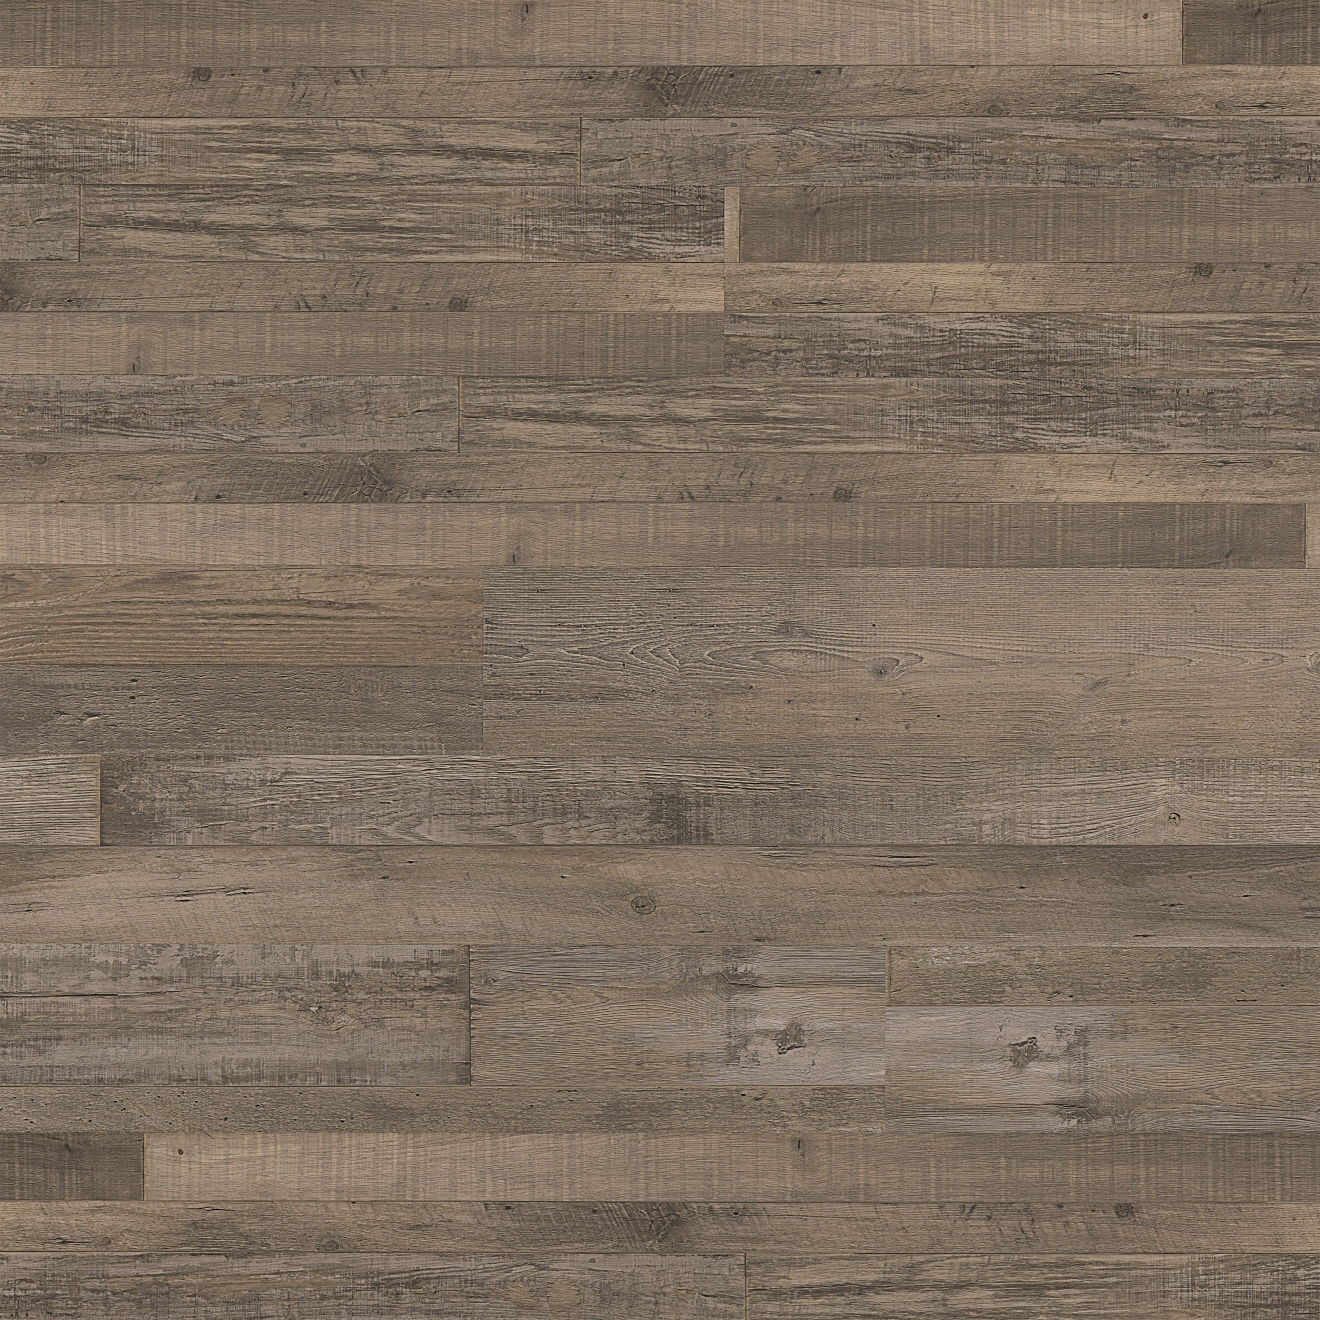 "Madera 7""x48"" Luxury SPC Vinyl Flooring in Brown Oak"